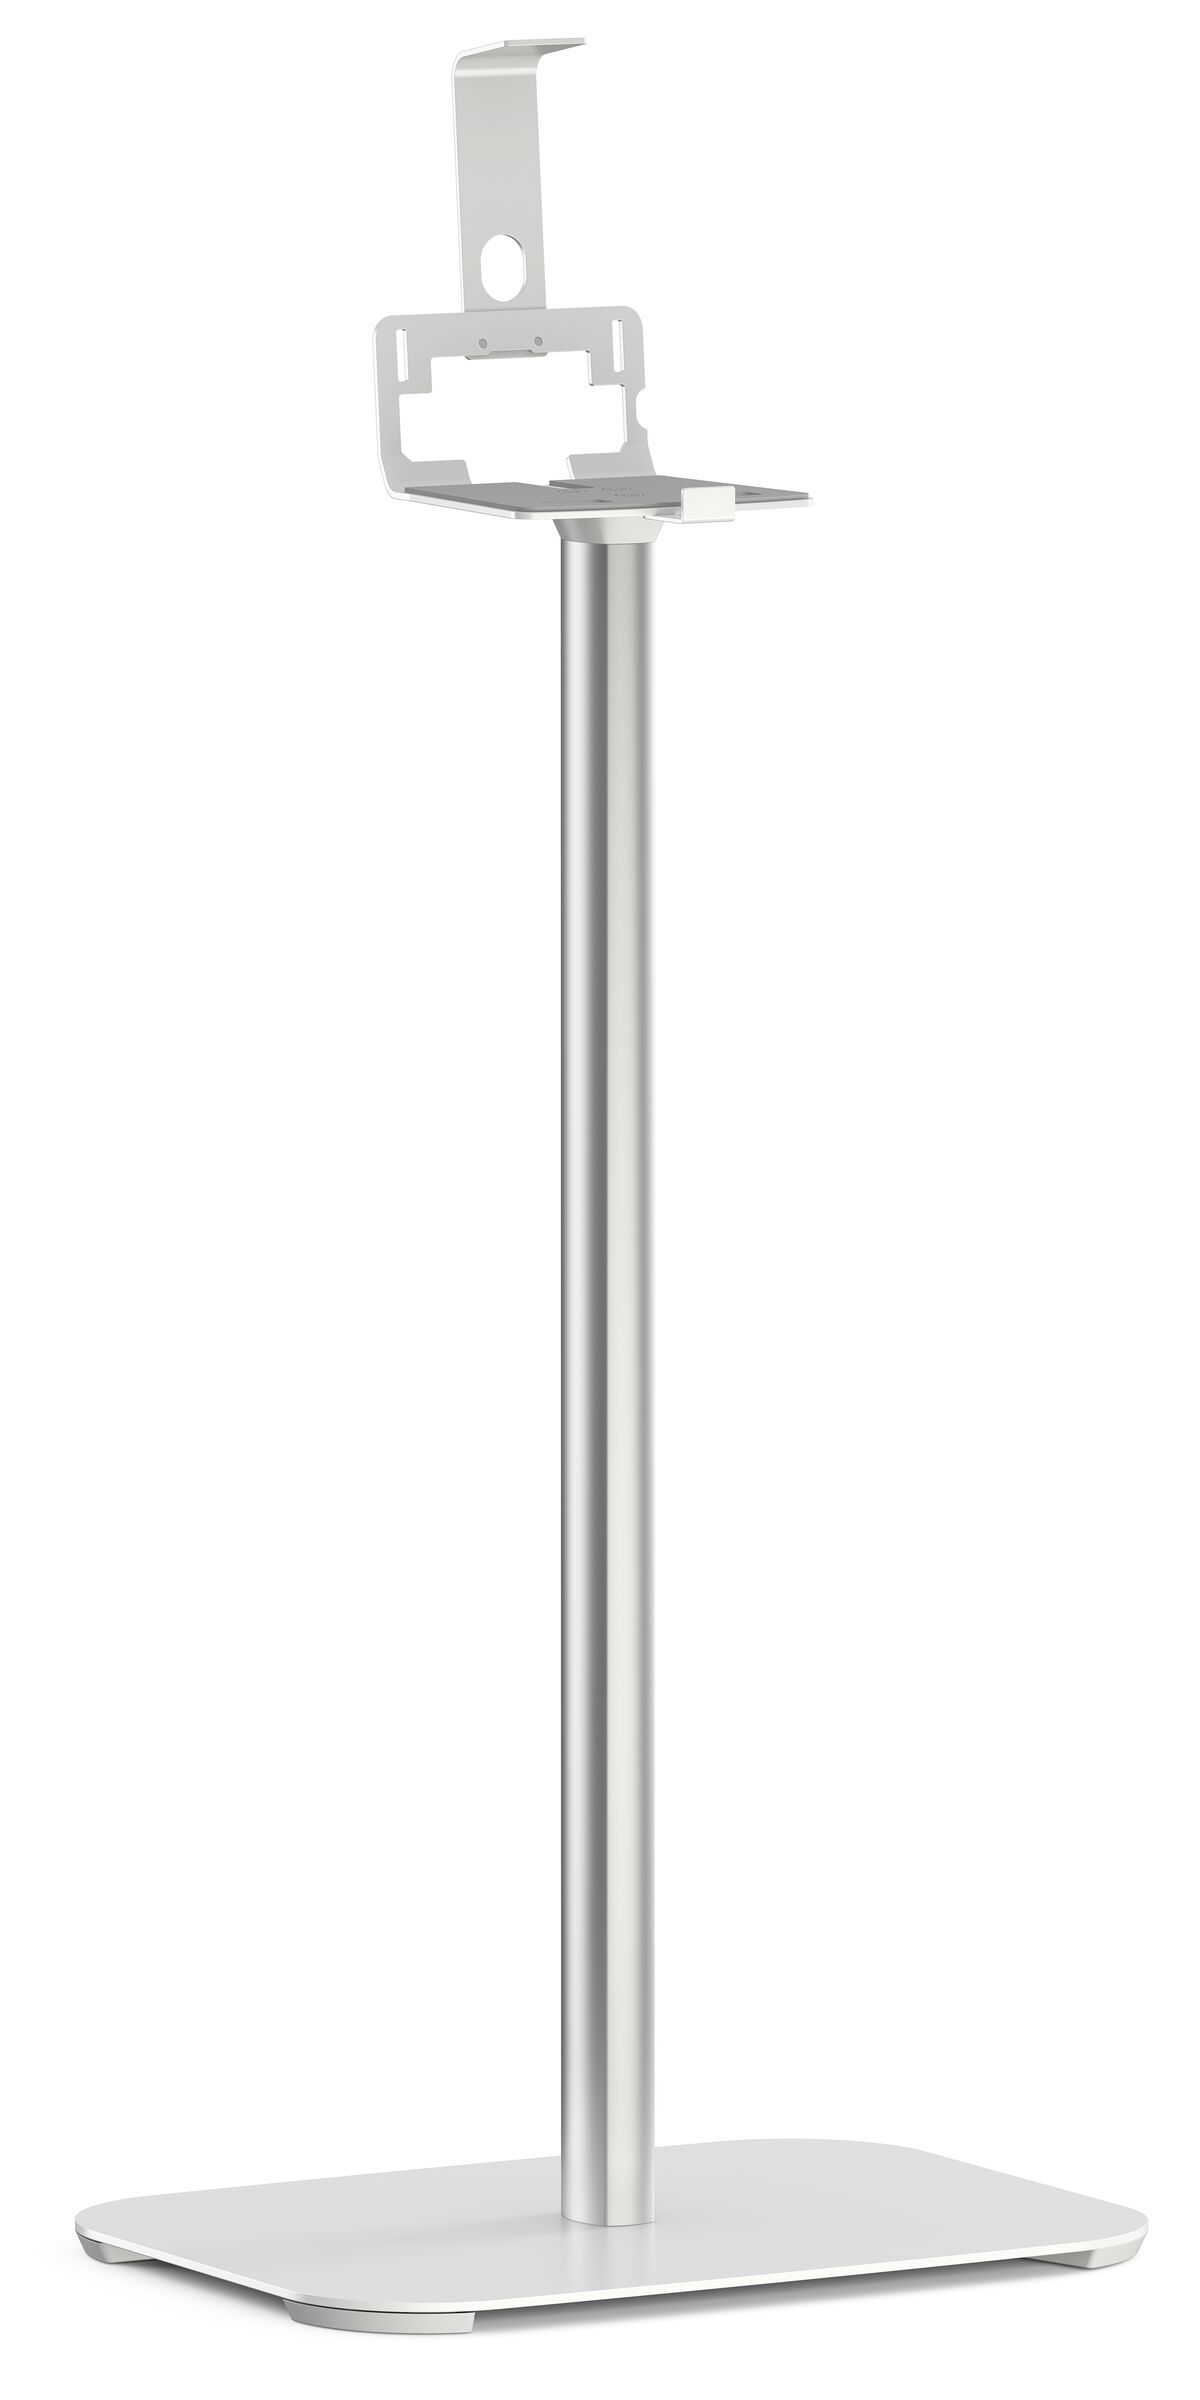 Vogel's SOUND 3305 Speaker Stand (white) - Ideally suited for: Denon HEOS 5